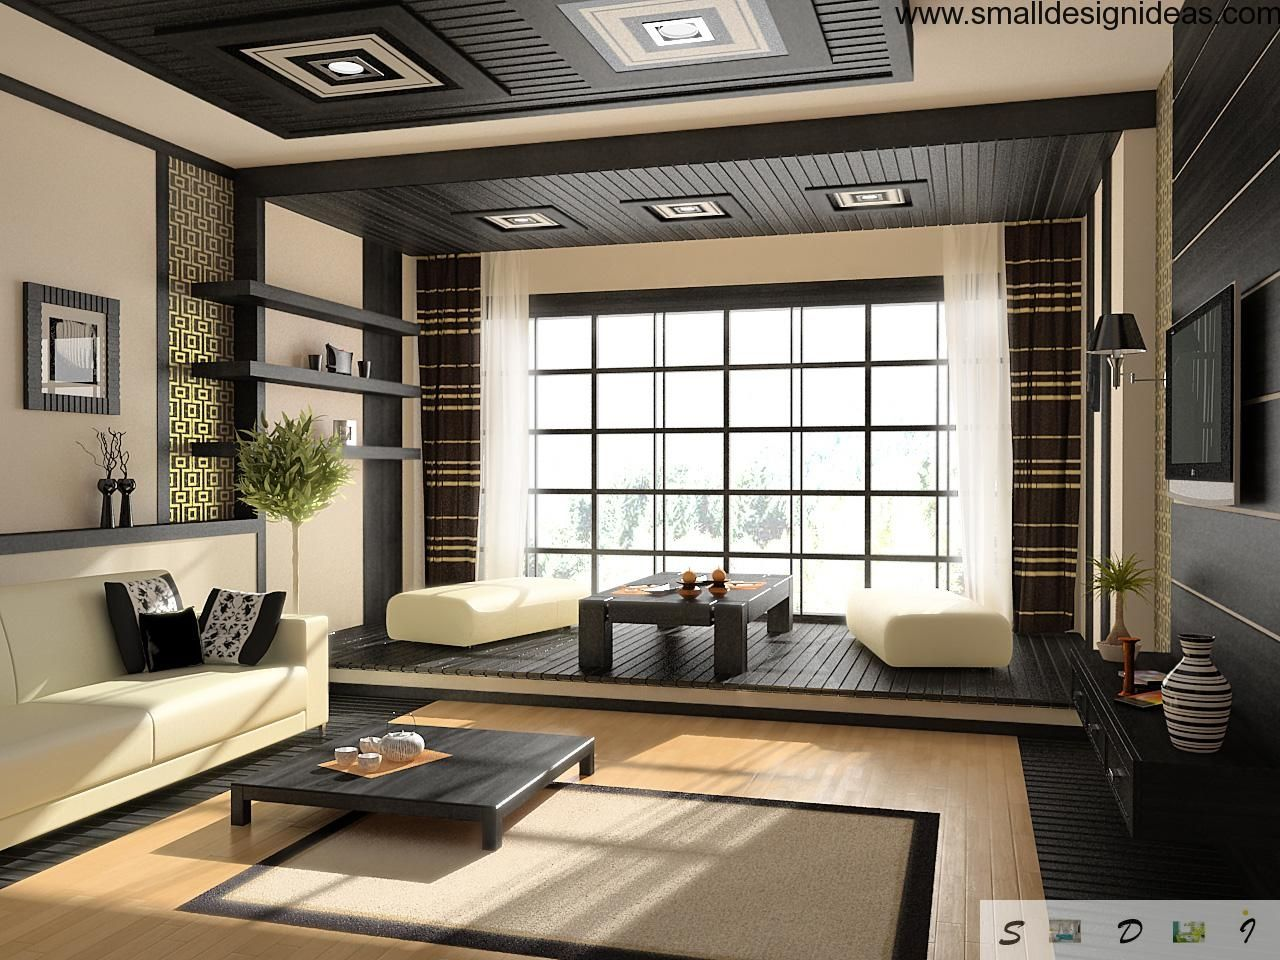 Amazing Interior Design 10 things to know before remodeling your interior into japanese